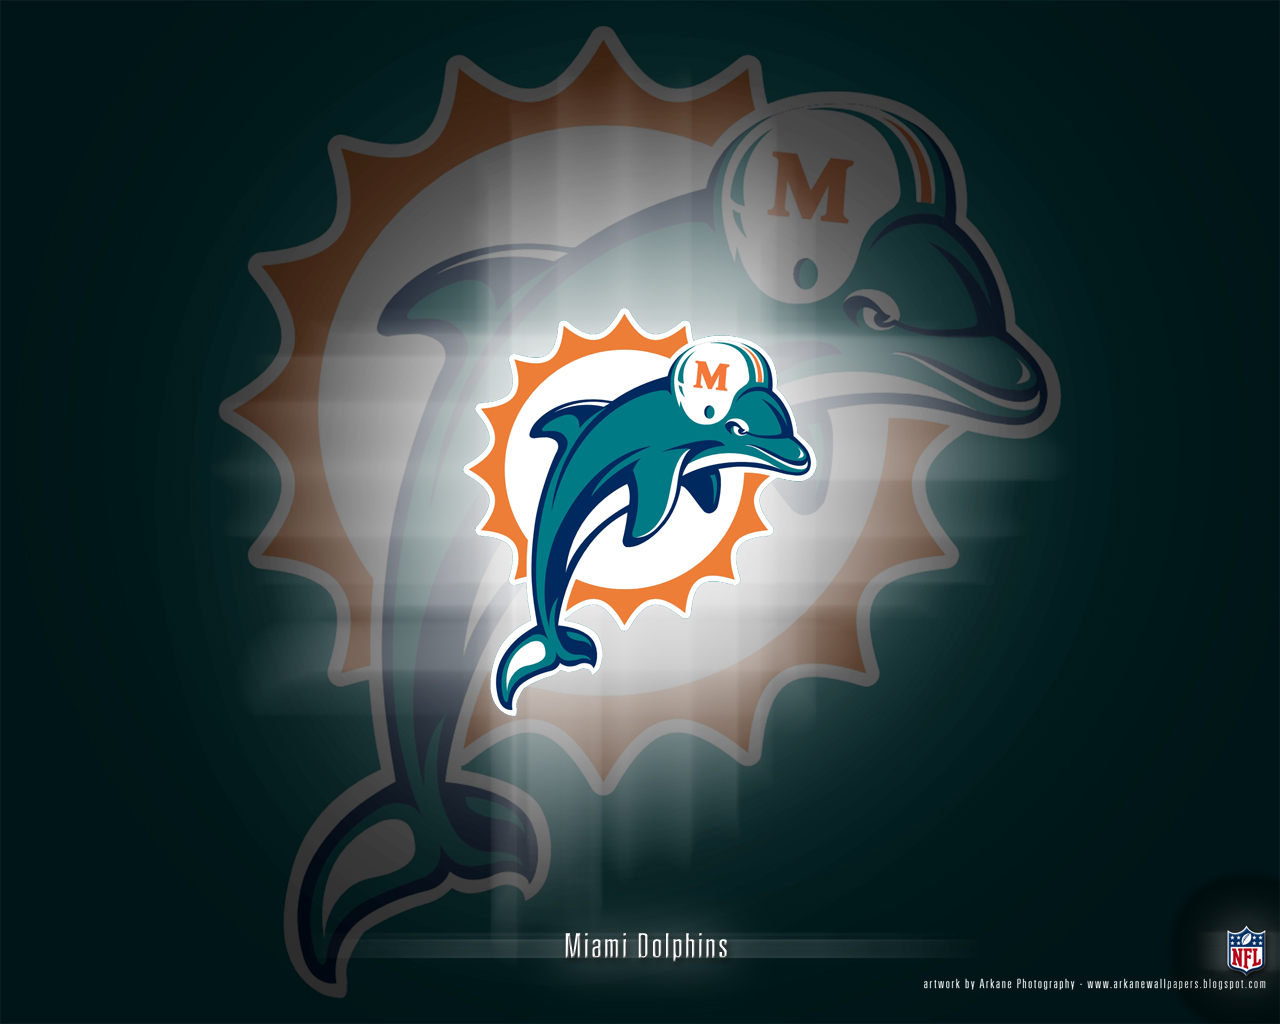 Arkane NFL Wallpapers Miami Dolphins   Vol 1 1280x1024